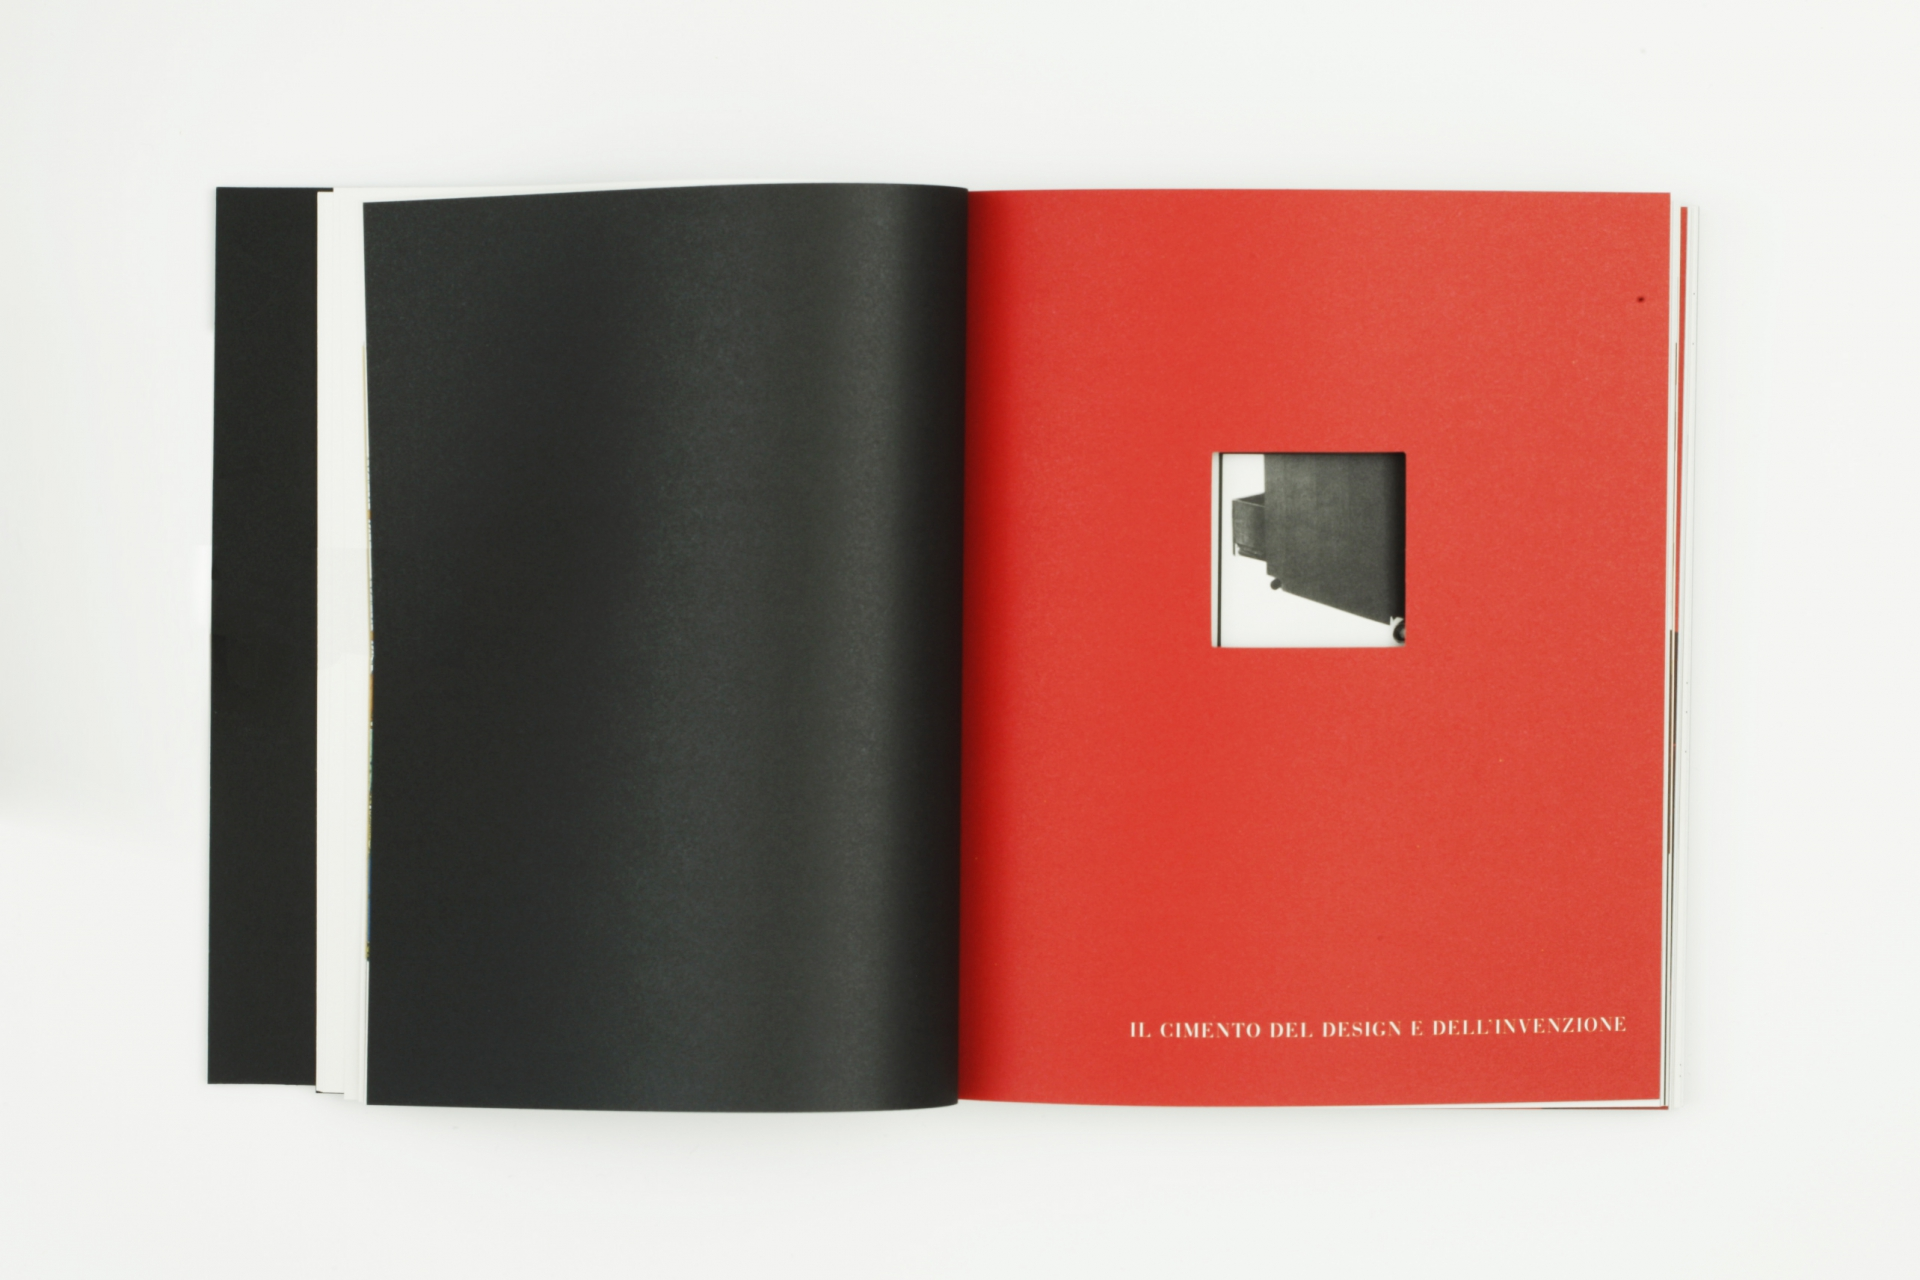 C.v.Z. BOFFI BOOK / STUDIO LISSONI